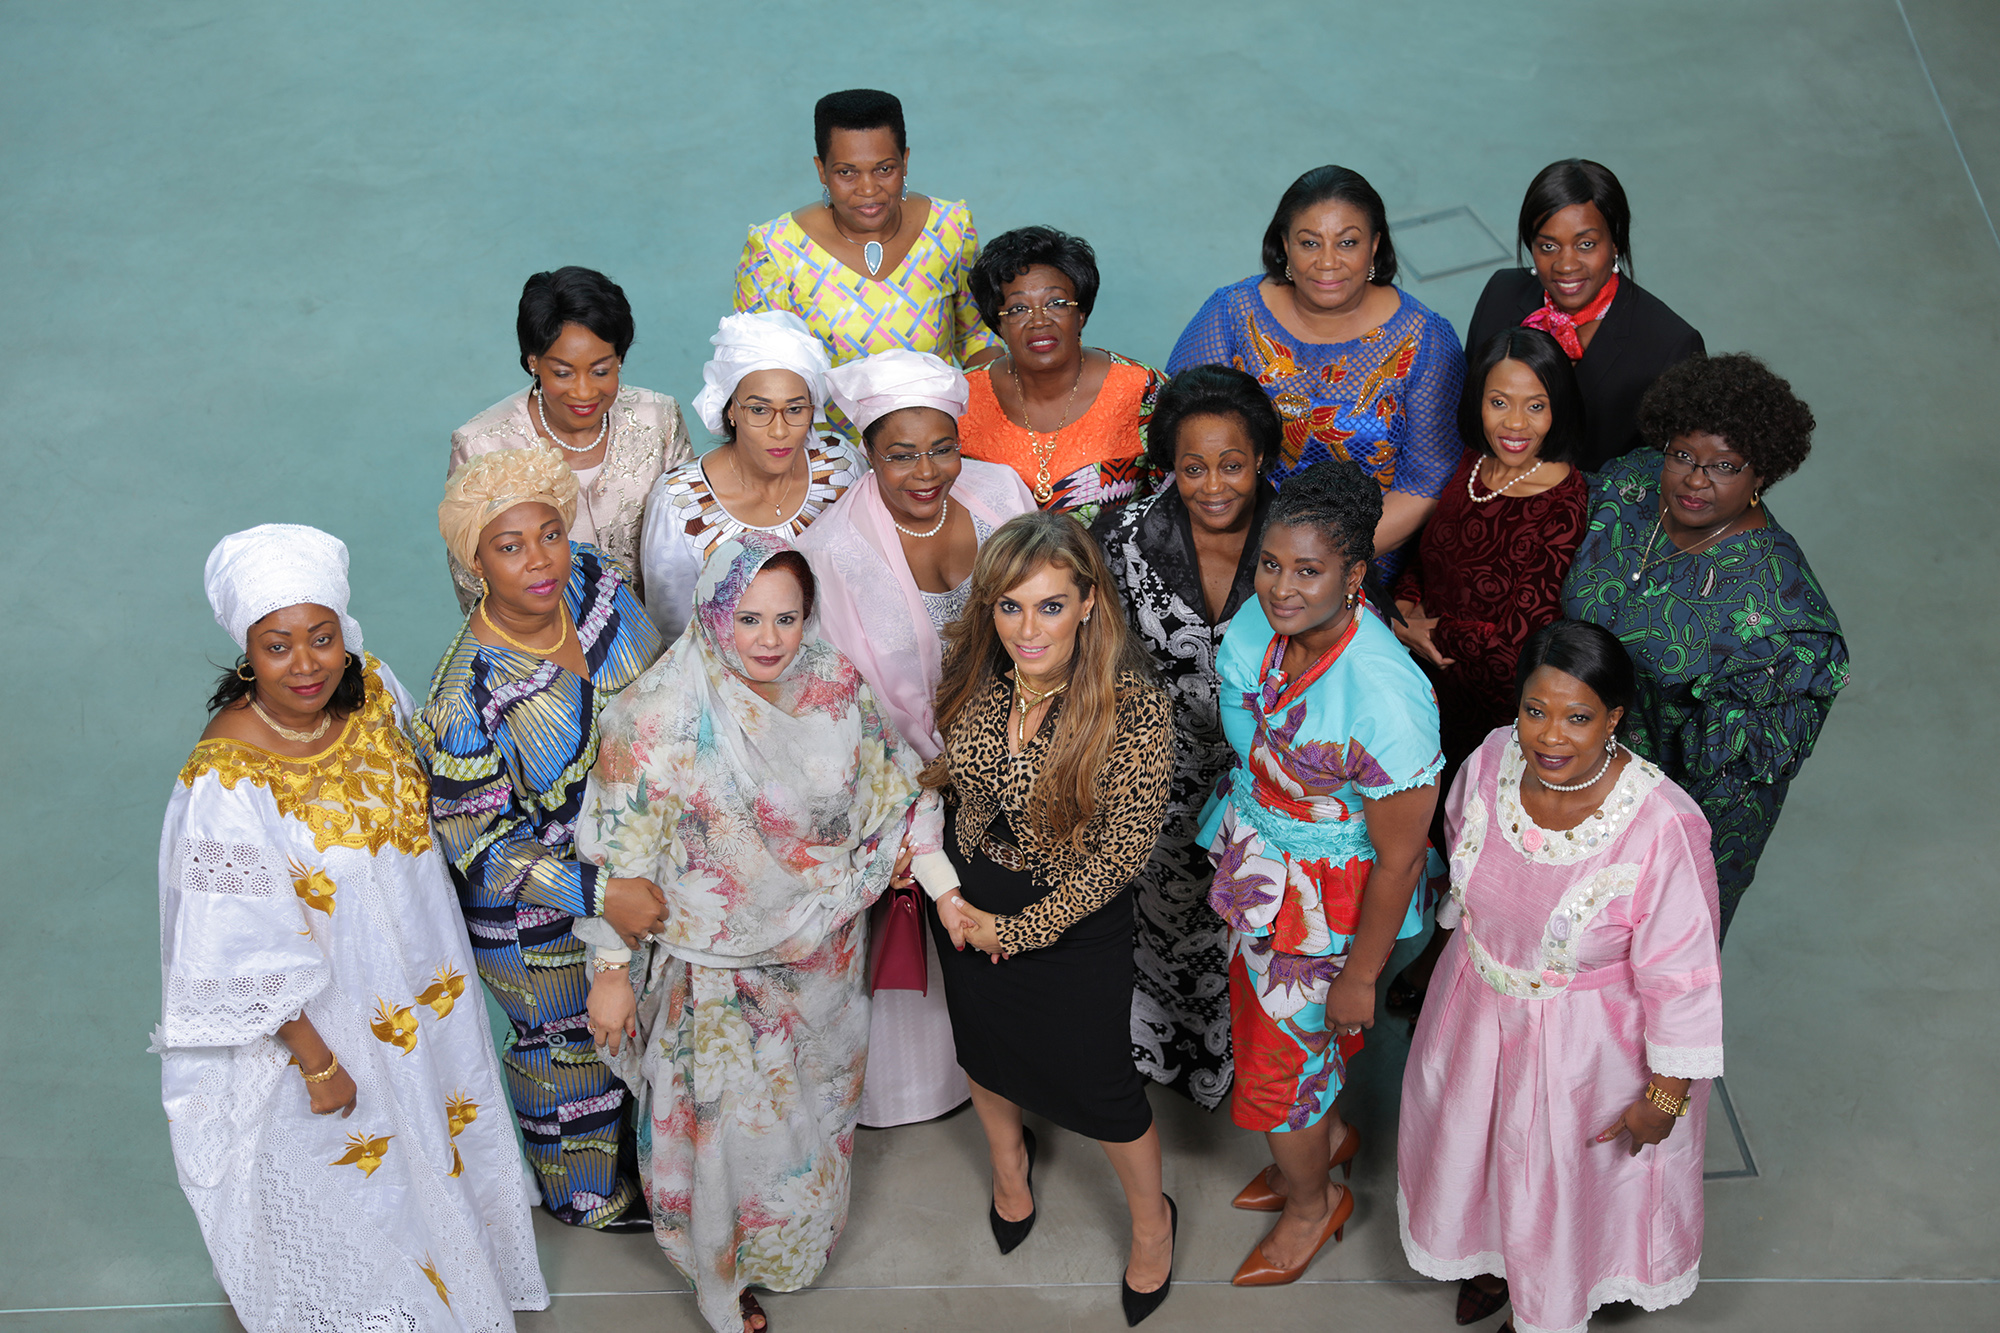 Dr. Rasha Kelej, CEO of Merck Foundation with H.E. CONDÉ DJENE, The First Lady of Guinea Conakry; H.E FATIMA MAADA, The First Lady of Sierra Leone; H.E. PROFESSOR GERTRUDE MUTHARIKA, The First Lady of Malawi; H.E. FATOUMATTA BAH-BARROW, The First Lady of The Gambia; H.E DENISE NKURUNZIZA, The First Lady of Burundi; H.E AÏSSATA ISSOUFOU MAHAMADO, The First Lady of Niger; H.E. BRIGITTE TOUADERA, The First Lady of Central African Republic; H.E. REBECCA AKUFO-ADDO, The First Lady of Ghana; H.E. CLAR WEAH, The First Lady of Republic of Liberia; H.E. ANTOINETTE SASSOU-NGUESSO, The First Lady of Congo Brazzaville; H.E. MONICA GEINGOS, The First Lady of Namibia; H.E. AUXILLIA MNANGAGW, The First Lady of Zimbabwe; H.E. NEO JANE MASISI, The First Lady of Botswana; H.E. DR. ISAURA FERRÃO NYUSI, The First Lady of Mozambique and Former First Lady of Mauritania